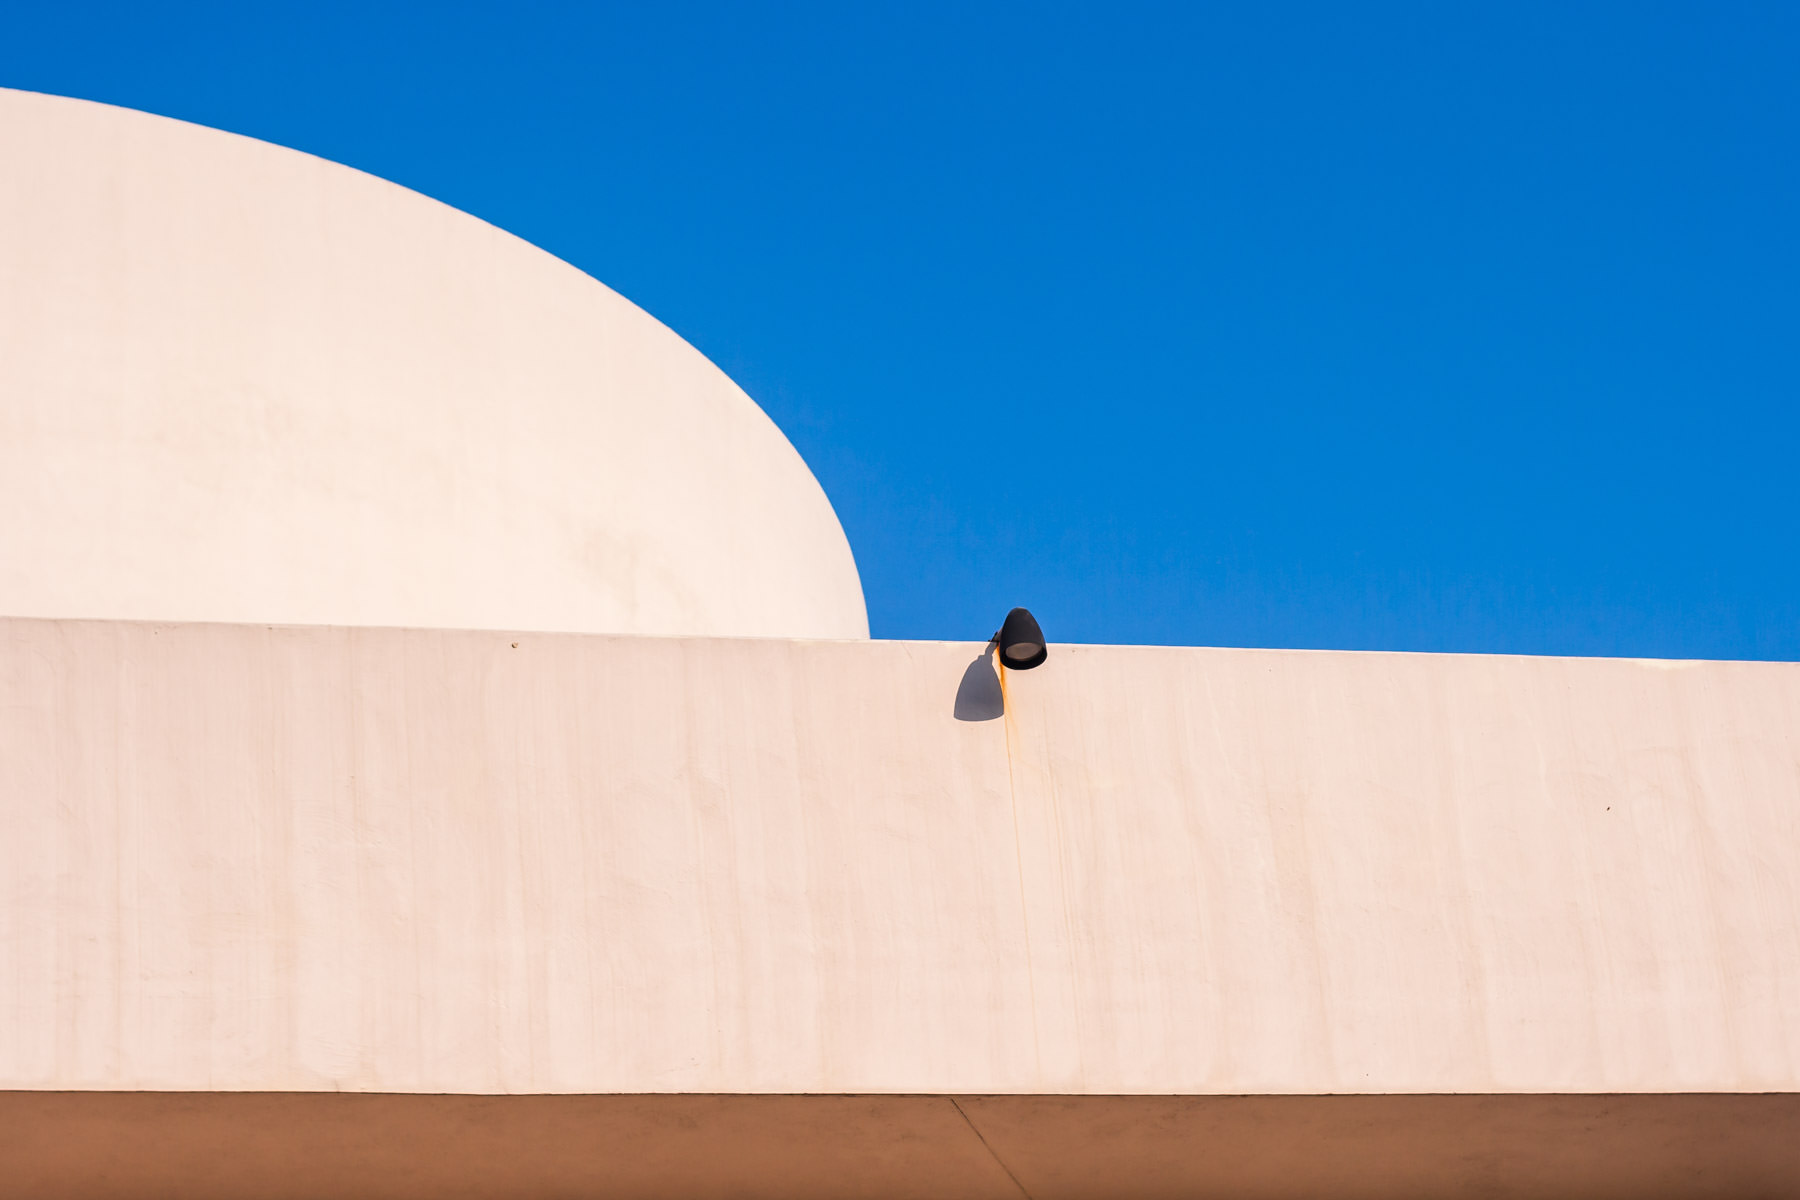 A lonesome lamp on the minimalist exterior of Dallas' Kalita Humphreys Theatre.